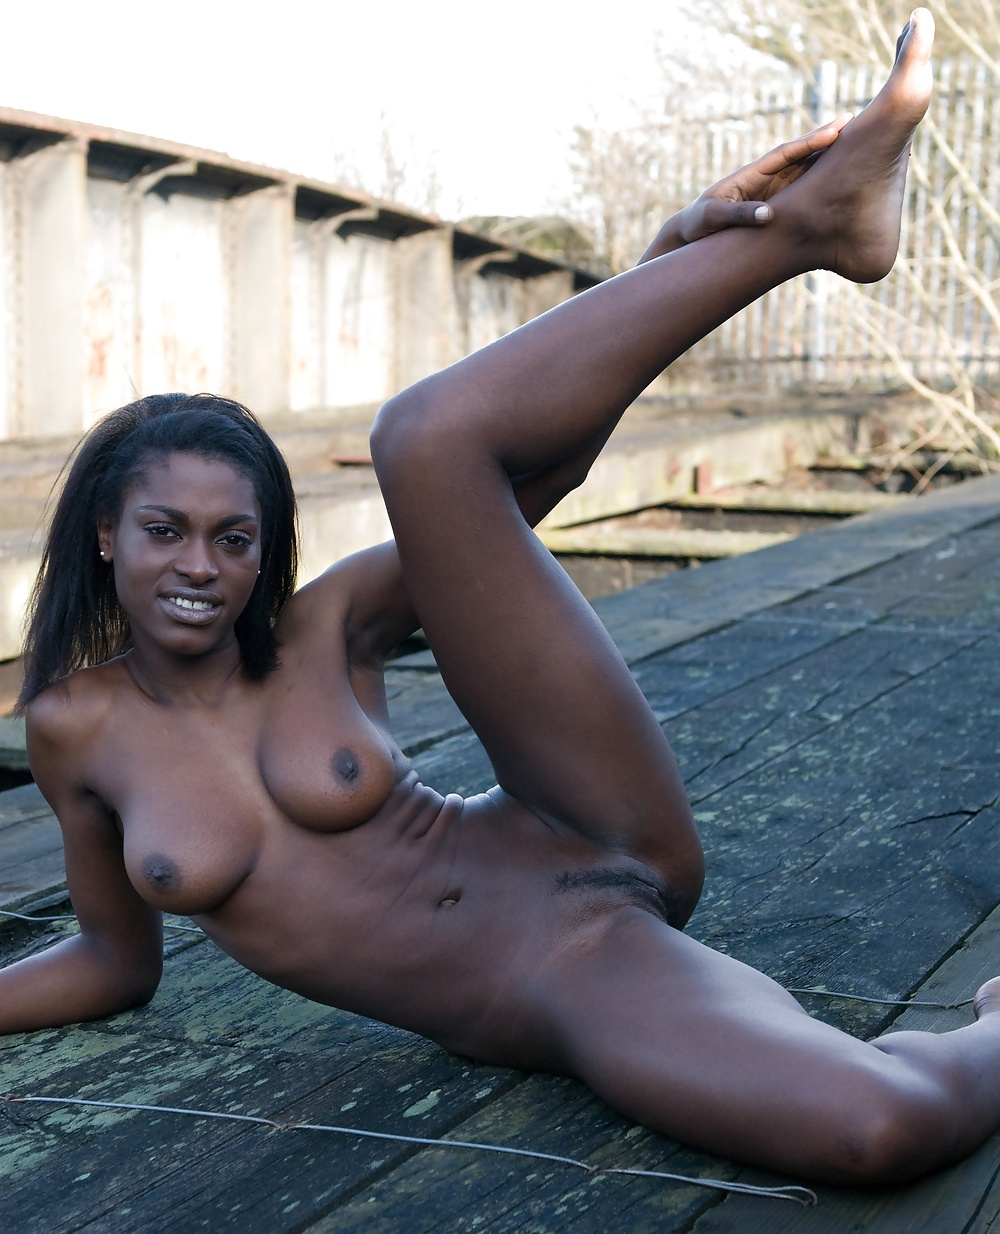 Of types different african ladies naked hot pussy showing